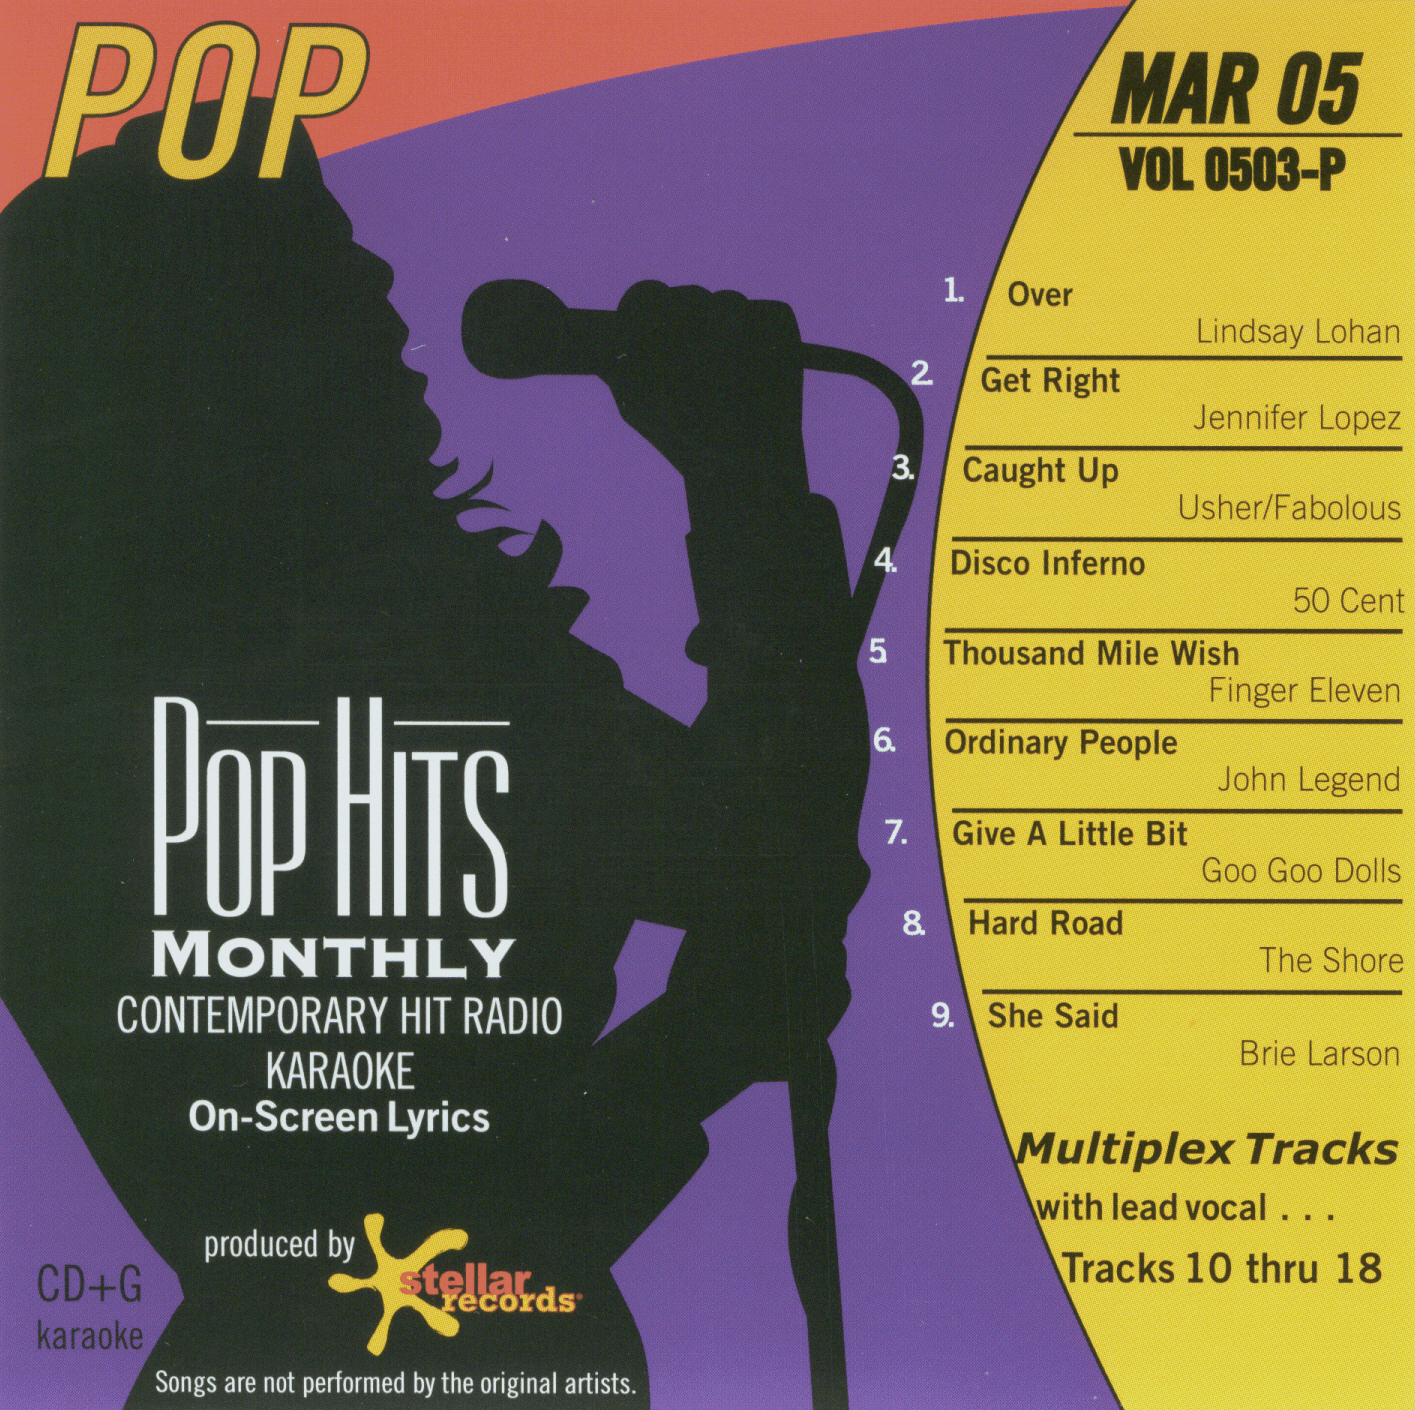 POP MAR 2005  Pop Hits Monthly   0503 P